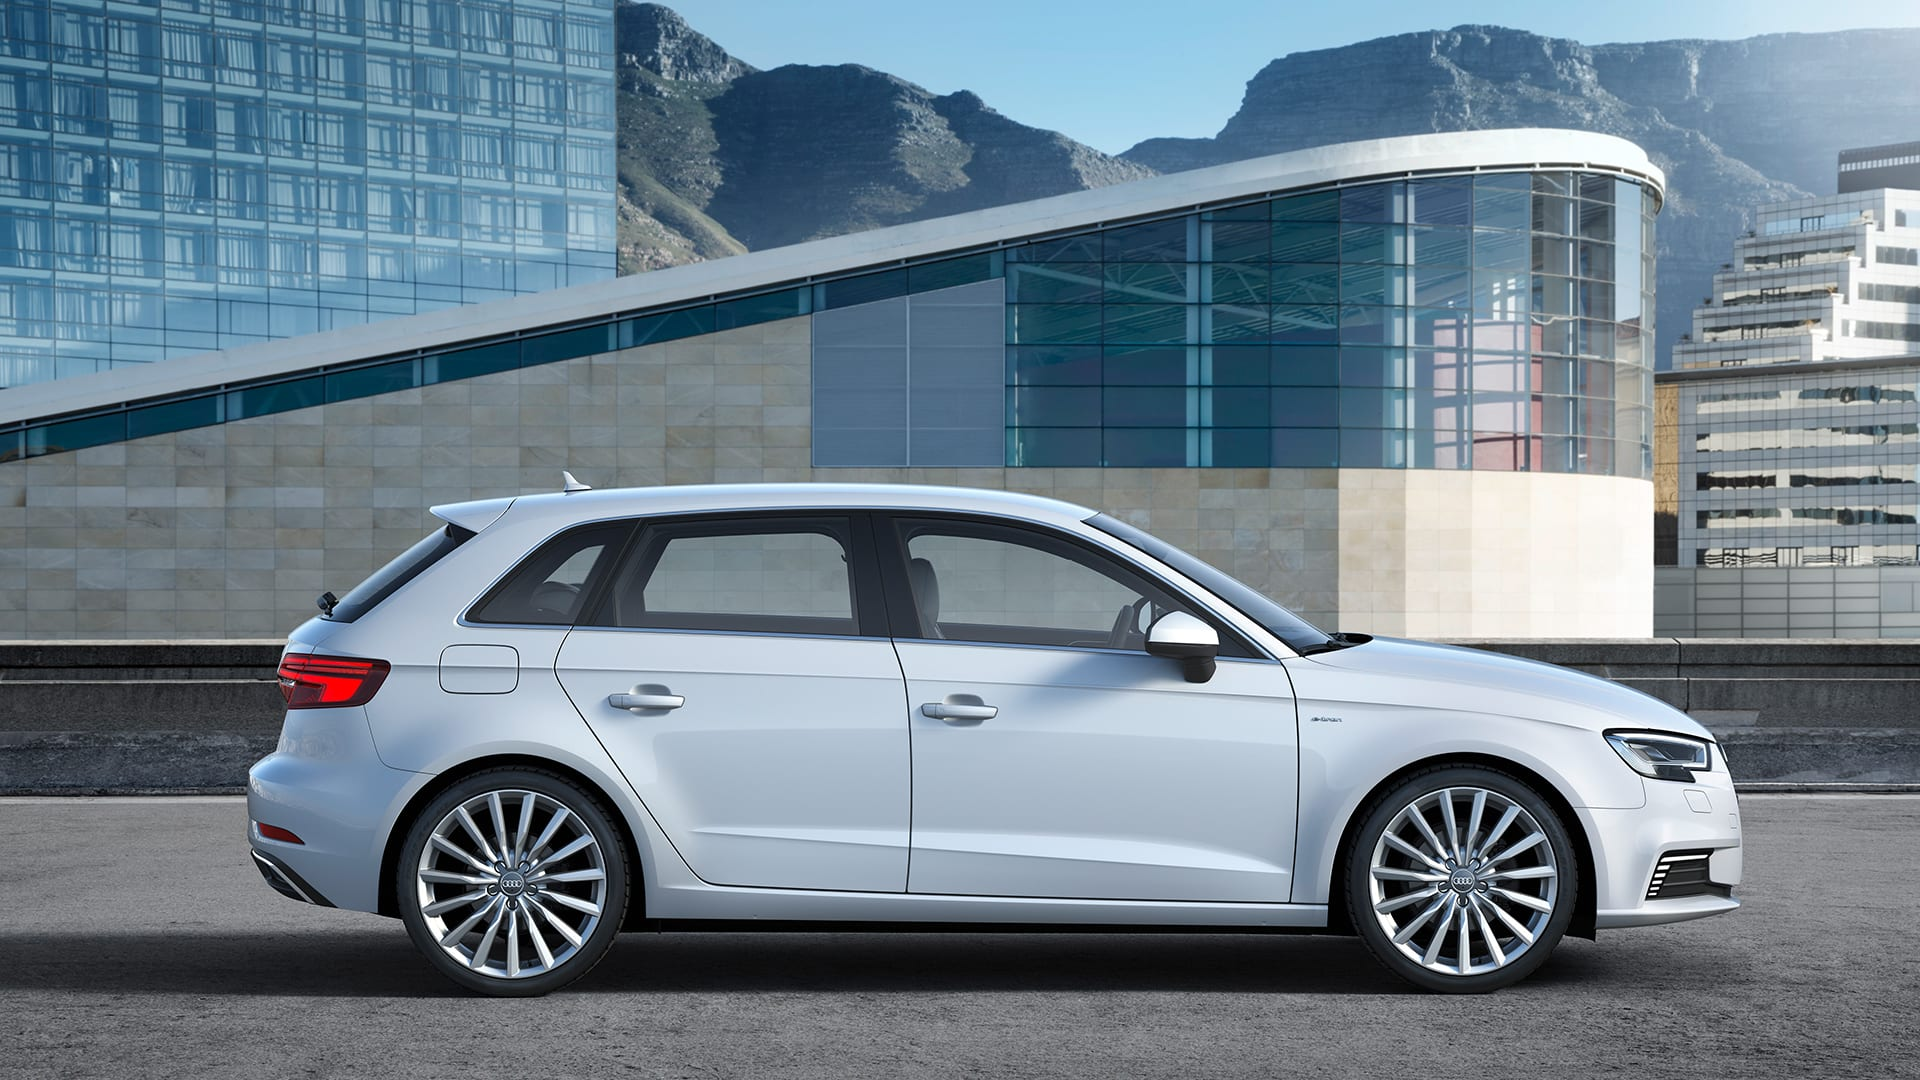 audi exterior review new interior spy price and car best the shoot release